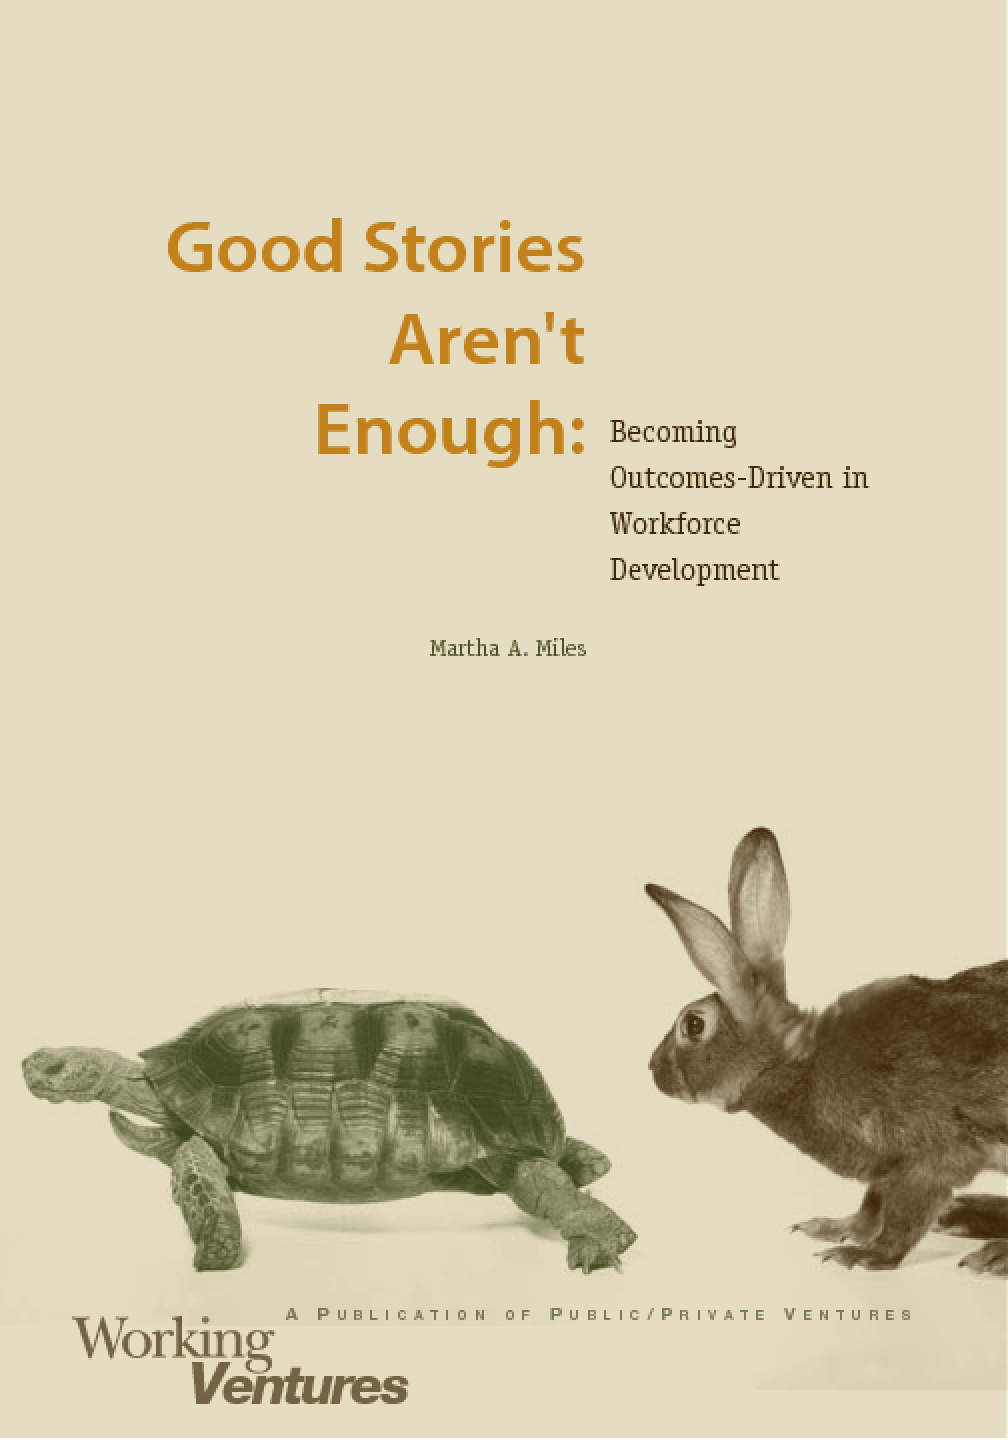 Good Stories Aren't Enough: Becoming Outcomes-Driven in Workforce Development